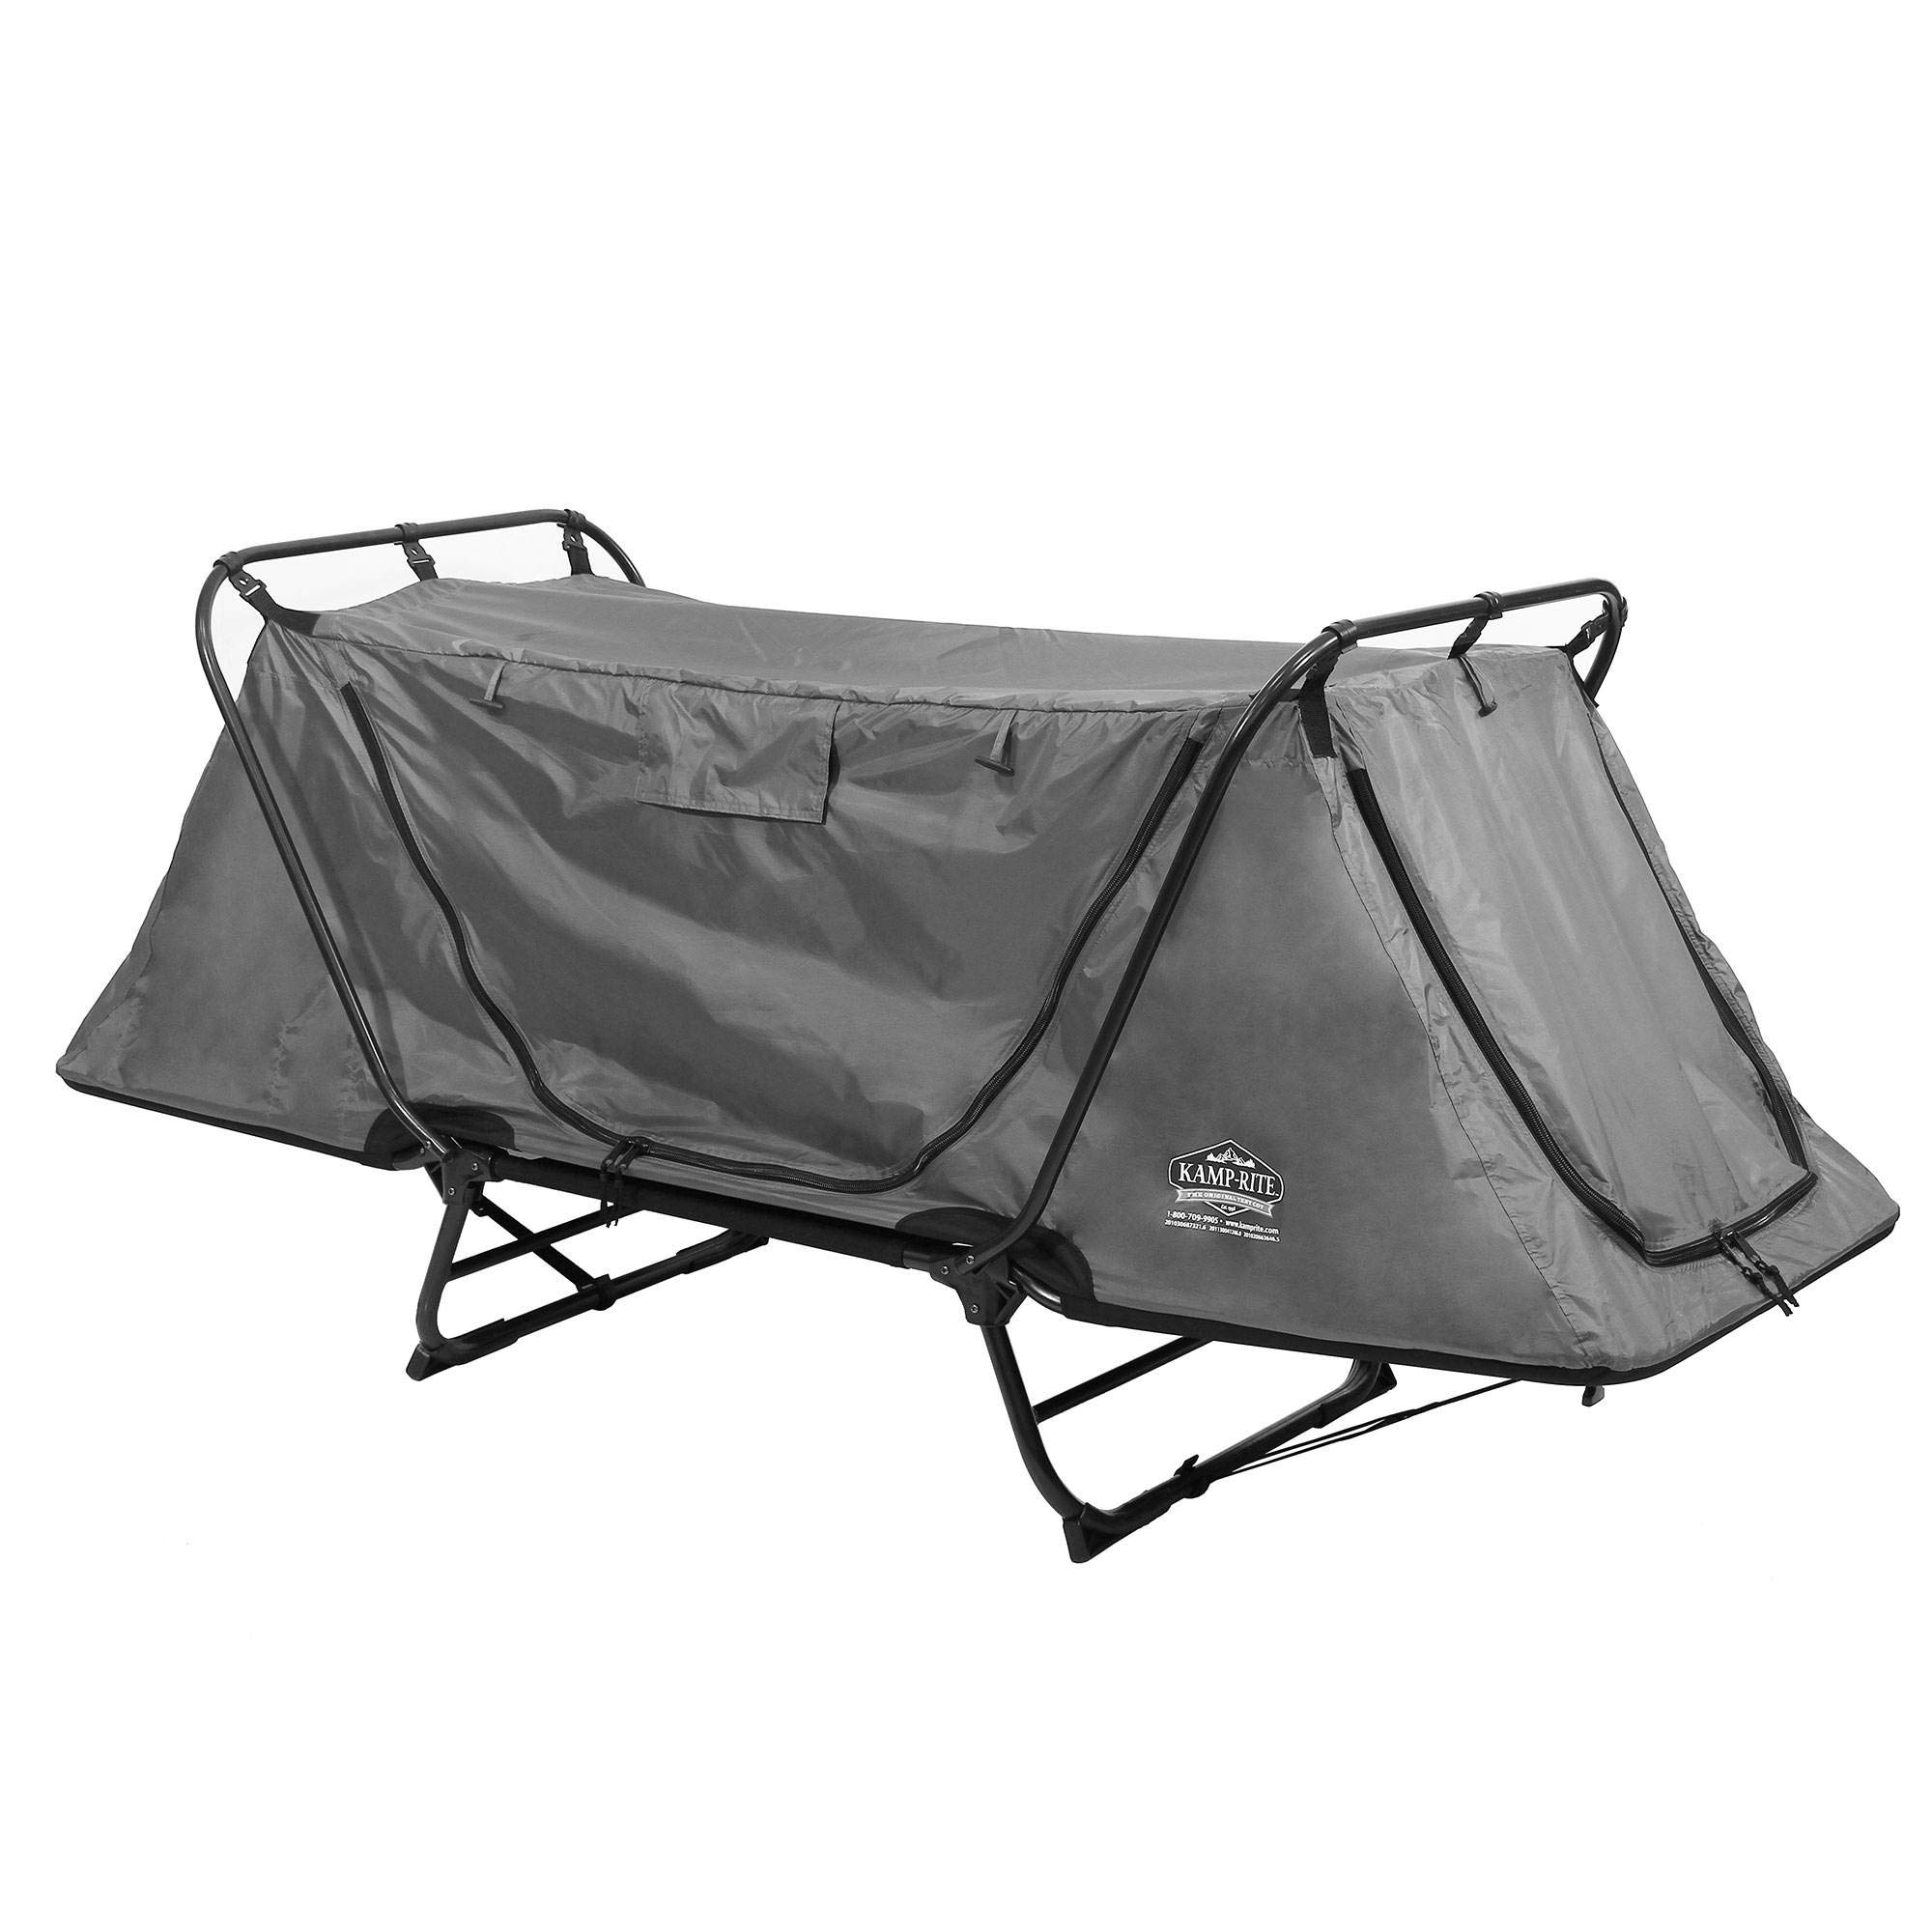 Kamp-Rite Original Tent Cot Folding Camping and Hiking Bed for 1 Person, Gray by Kamp-Rite